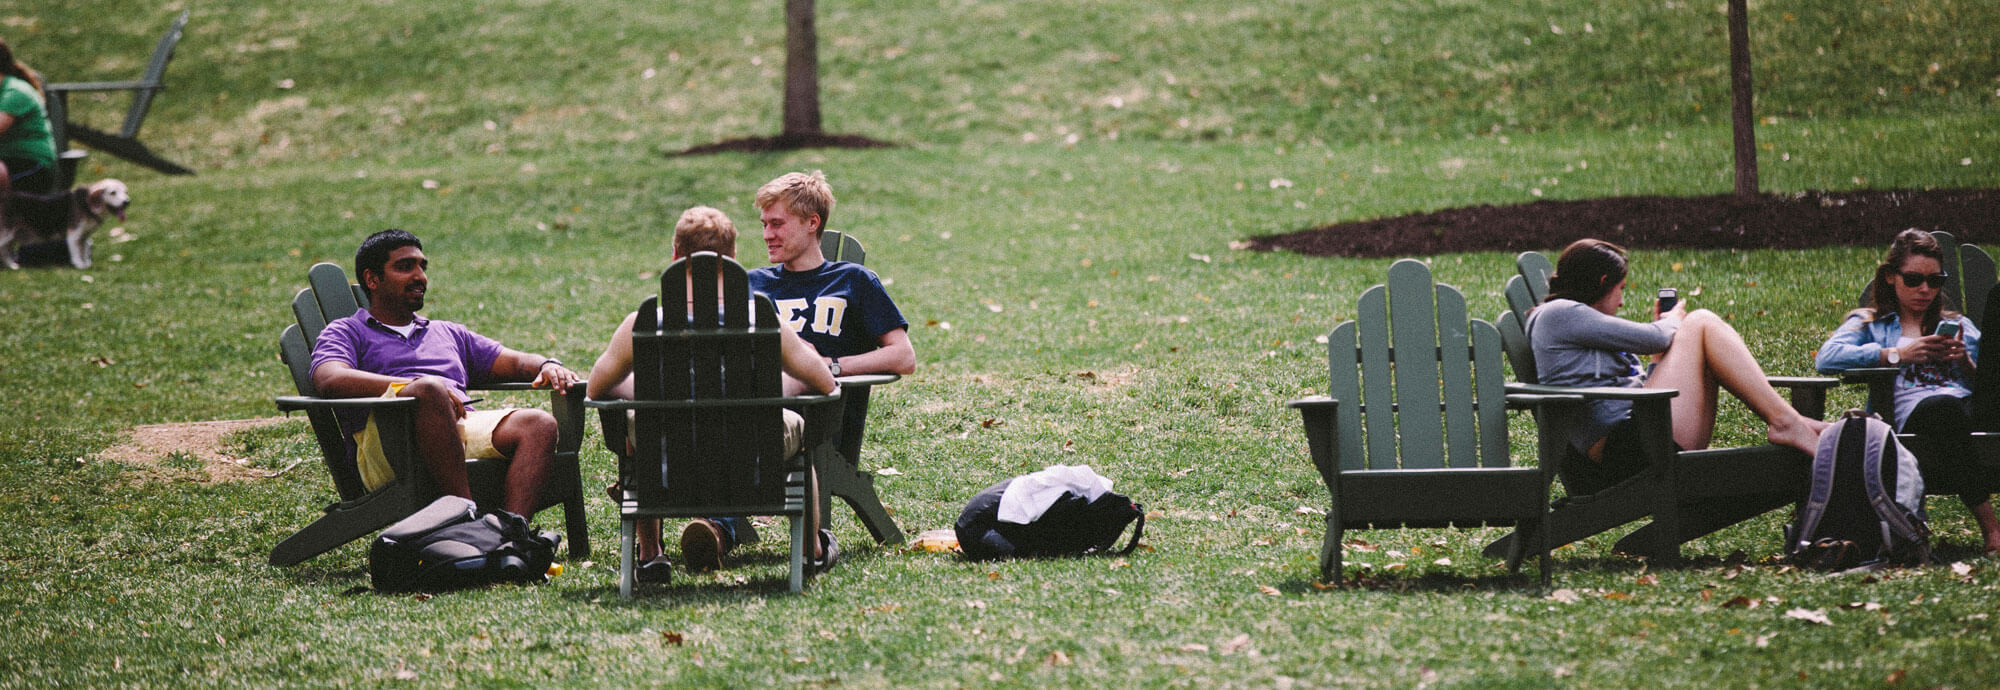 Lehigh students lounging on campus